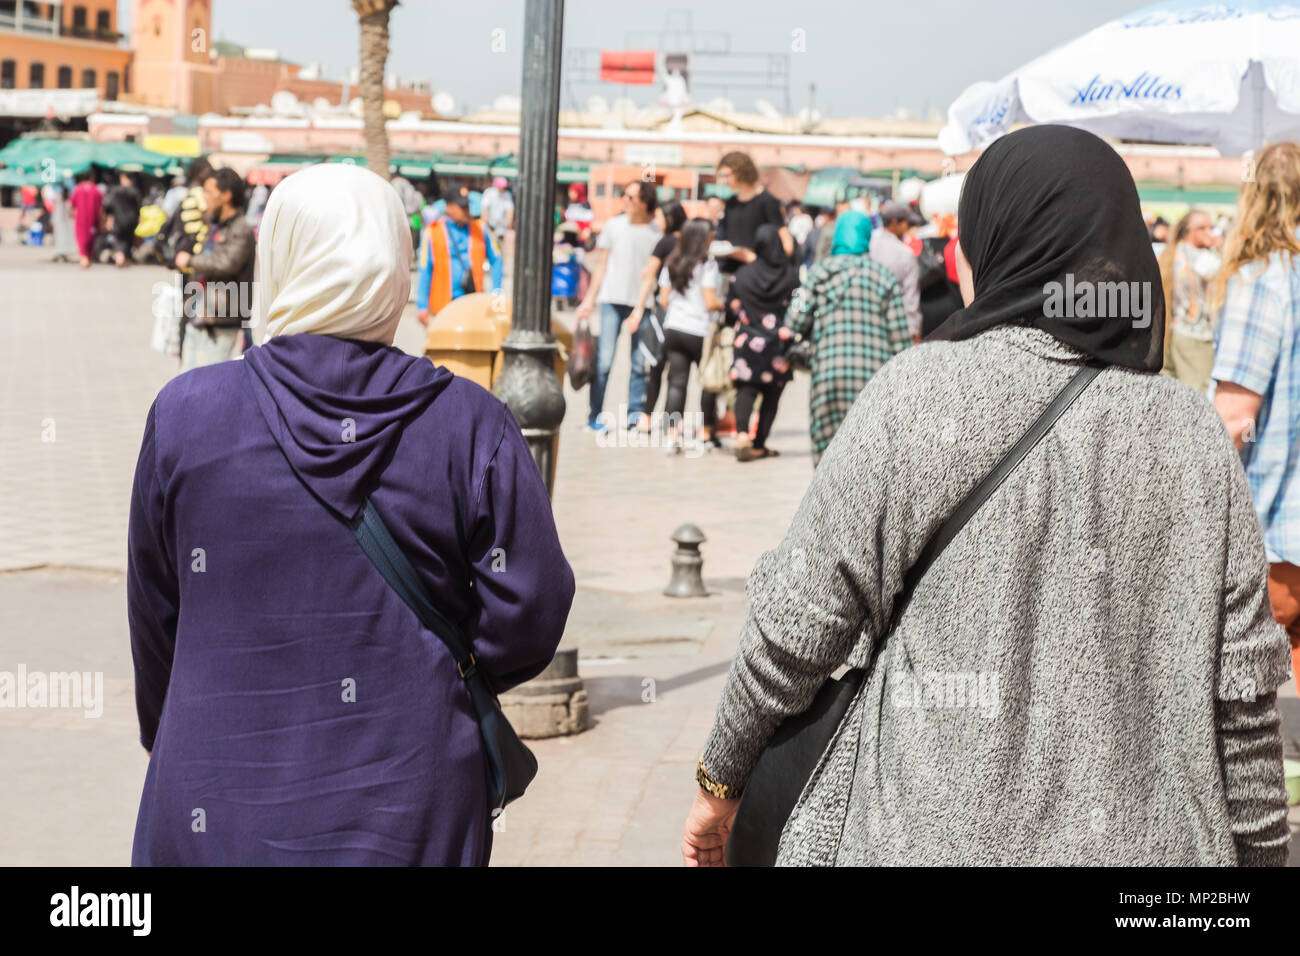 Two Islamic women walk for pizza jamaa el fna in marrakech, Morocco. - Stock Image